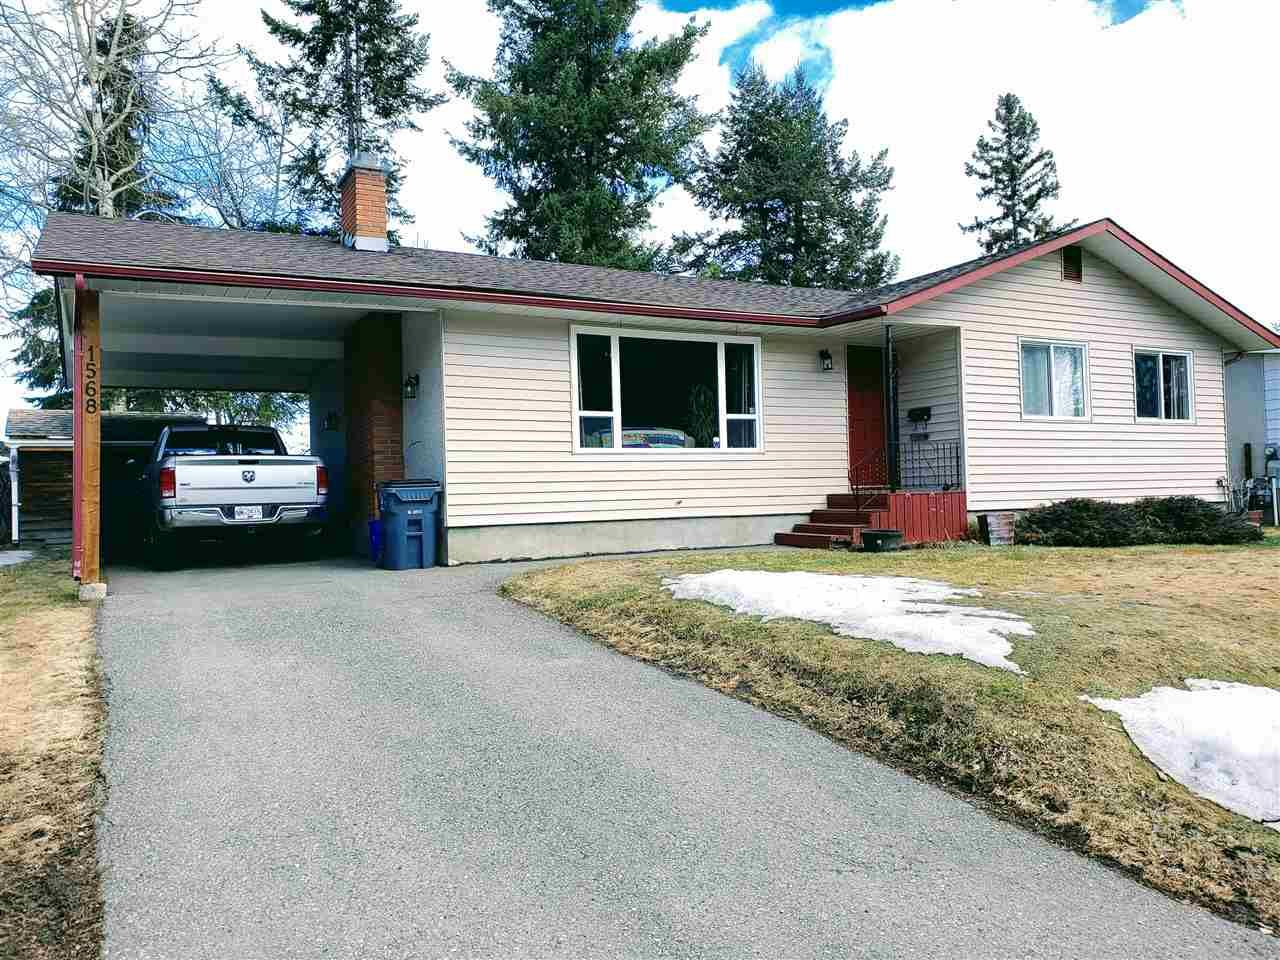 Main Photo: 1568 PEARSON Avenue in Prince George: Assman House for sale (PG City Central (Zone 72))  : MLS®# R2554696